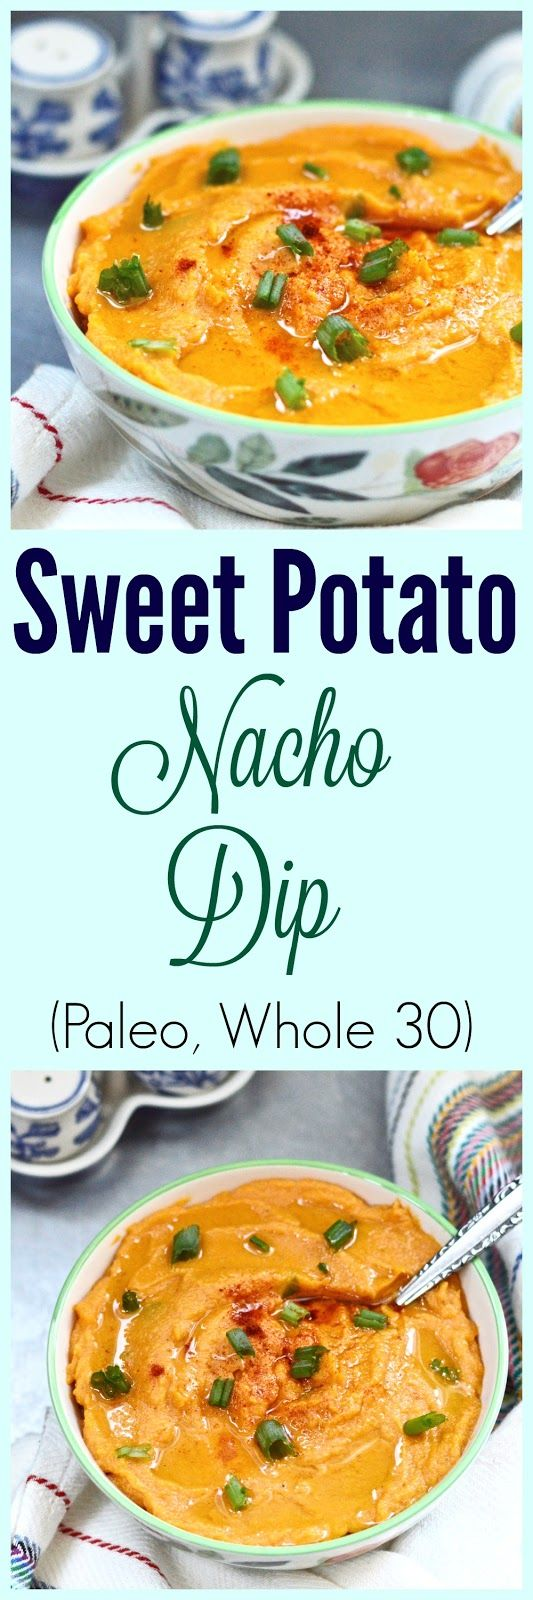 Pure and Simple Nourishment : Sweet Potato Nacho Dip and Ditch The Wheat Cookbook Review (Paleo, Dairy Free, Whole 30)